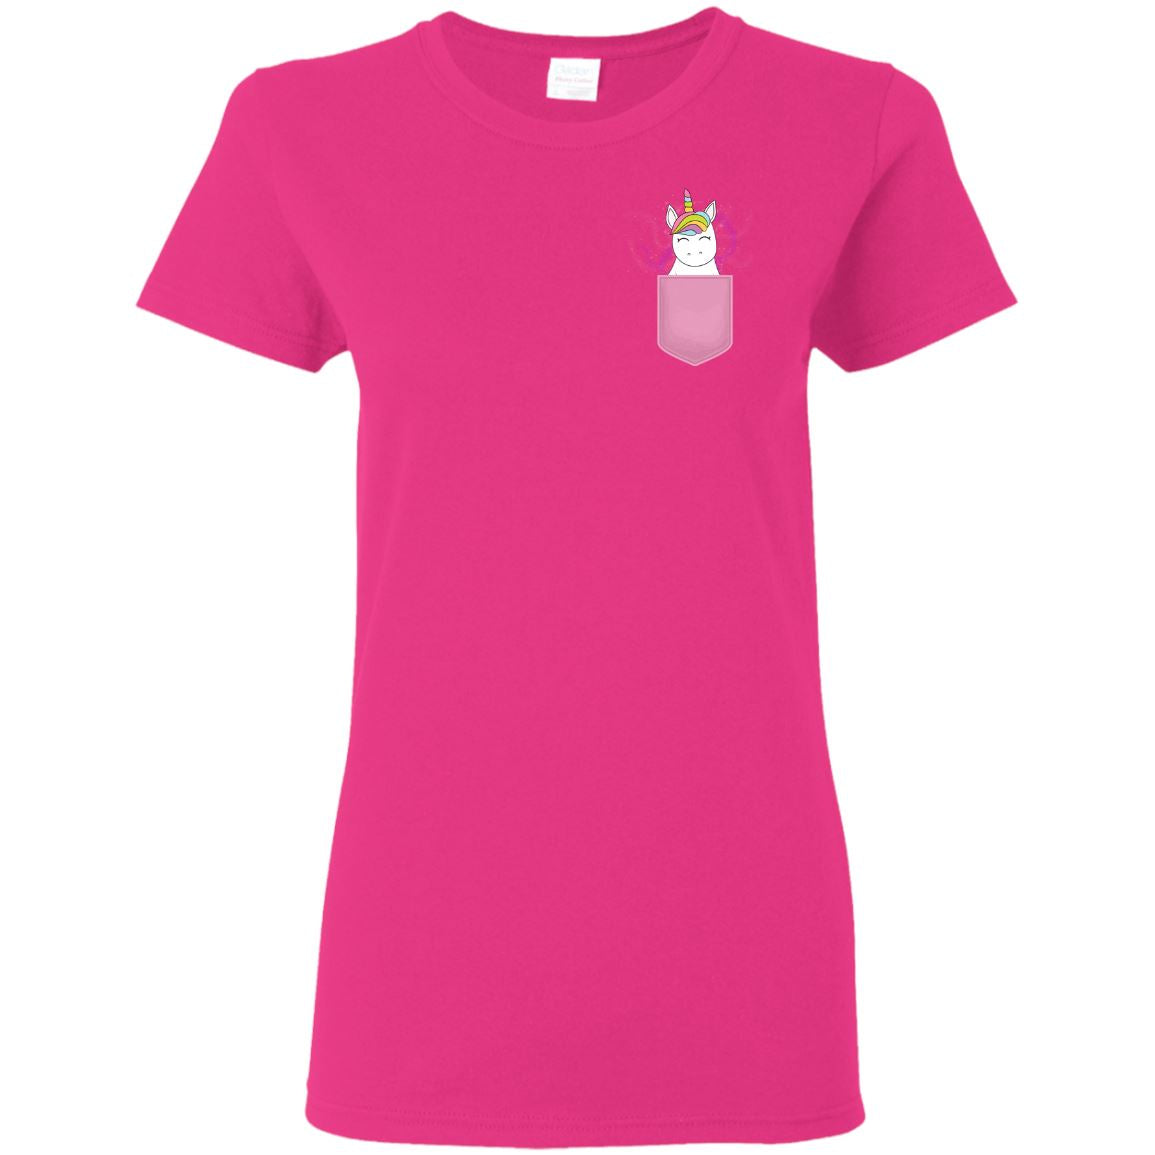 Magical Unicorn Pocket Print T-Shirt Apparel Heliconia S